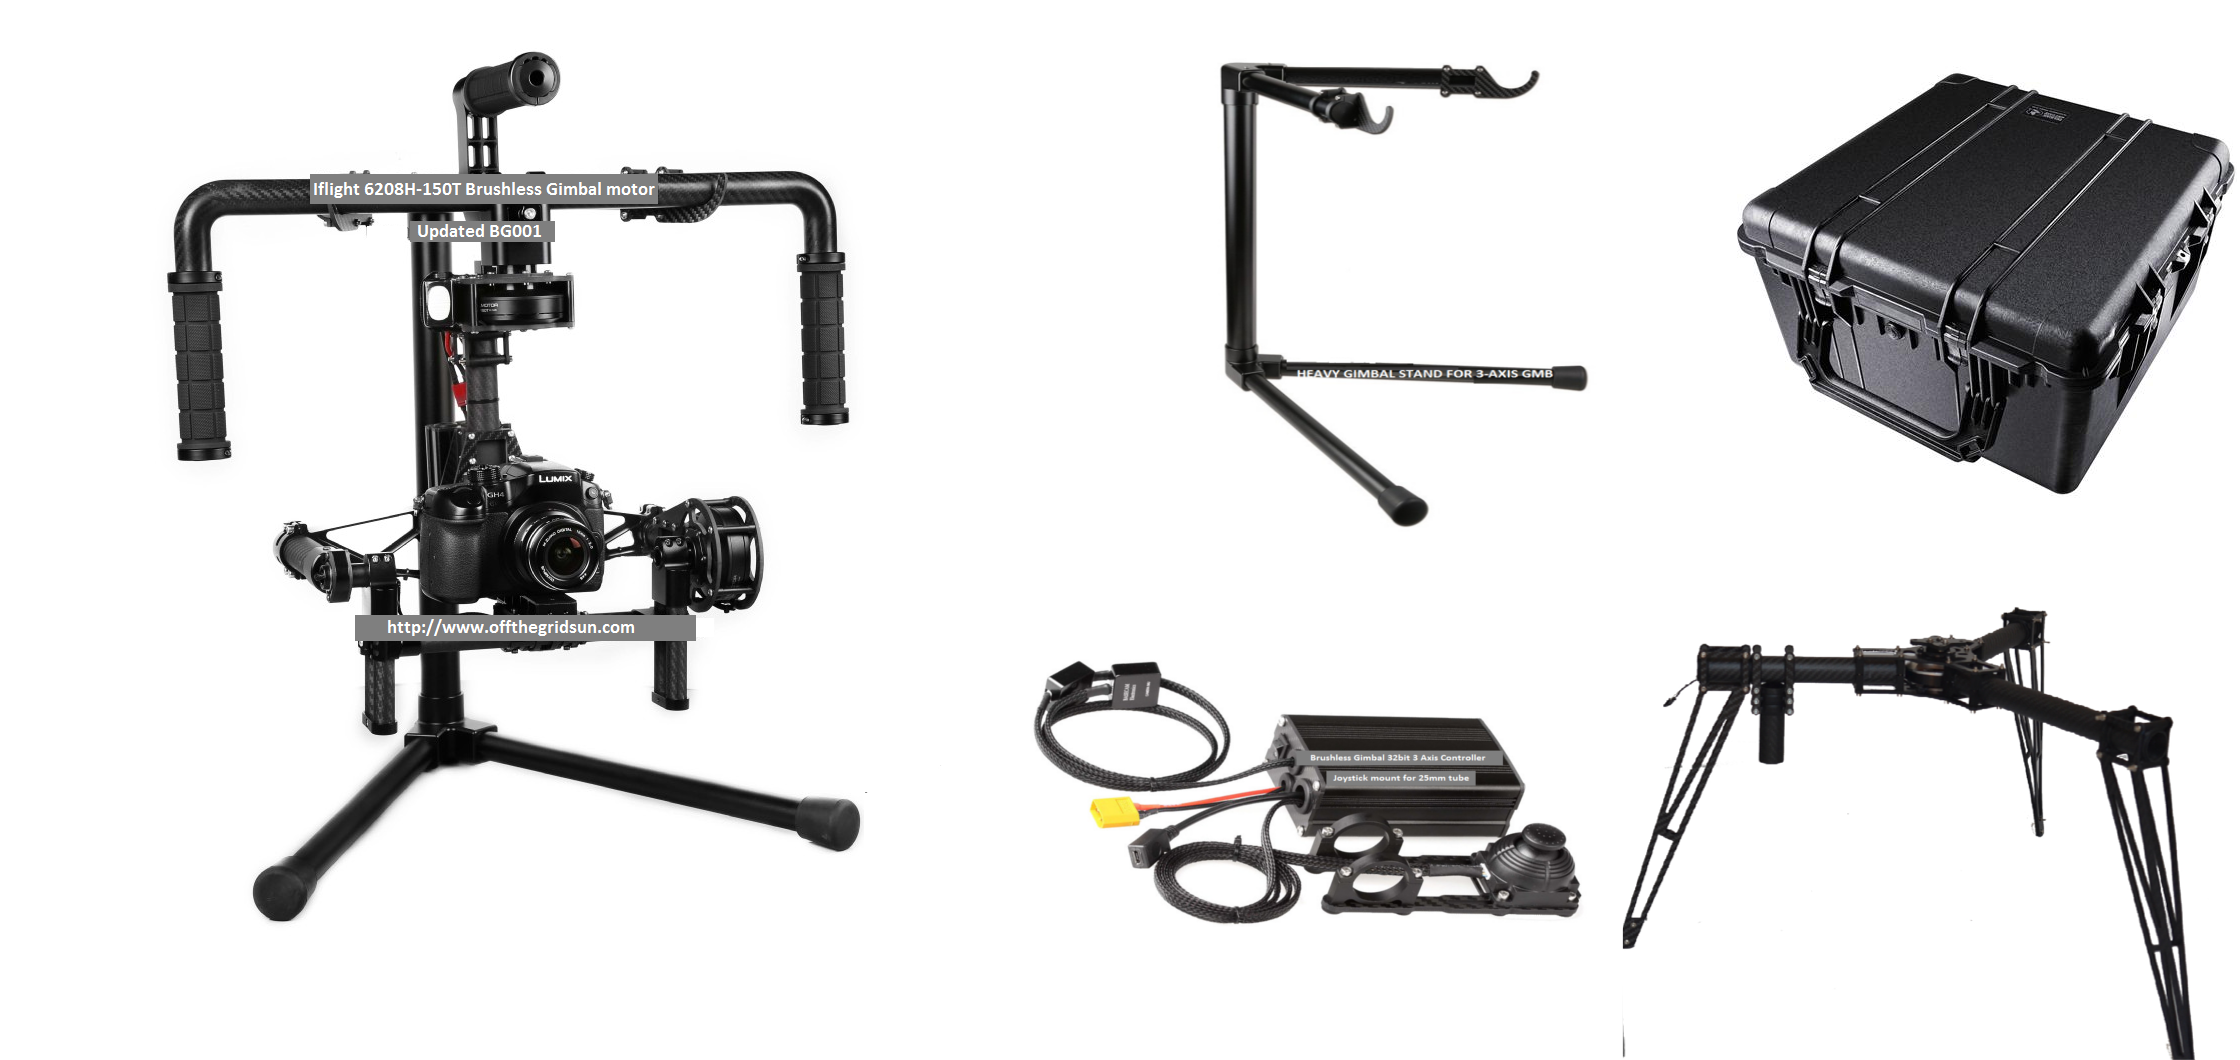 CINESTAR 3 Axis Brushless GIMBAL system & Steadicam LANDING GEAR - Click Image to Close